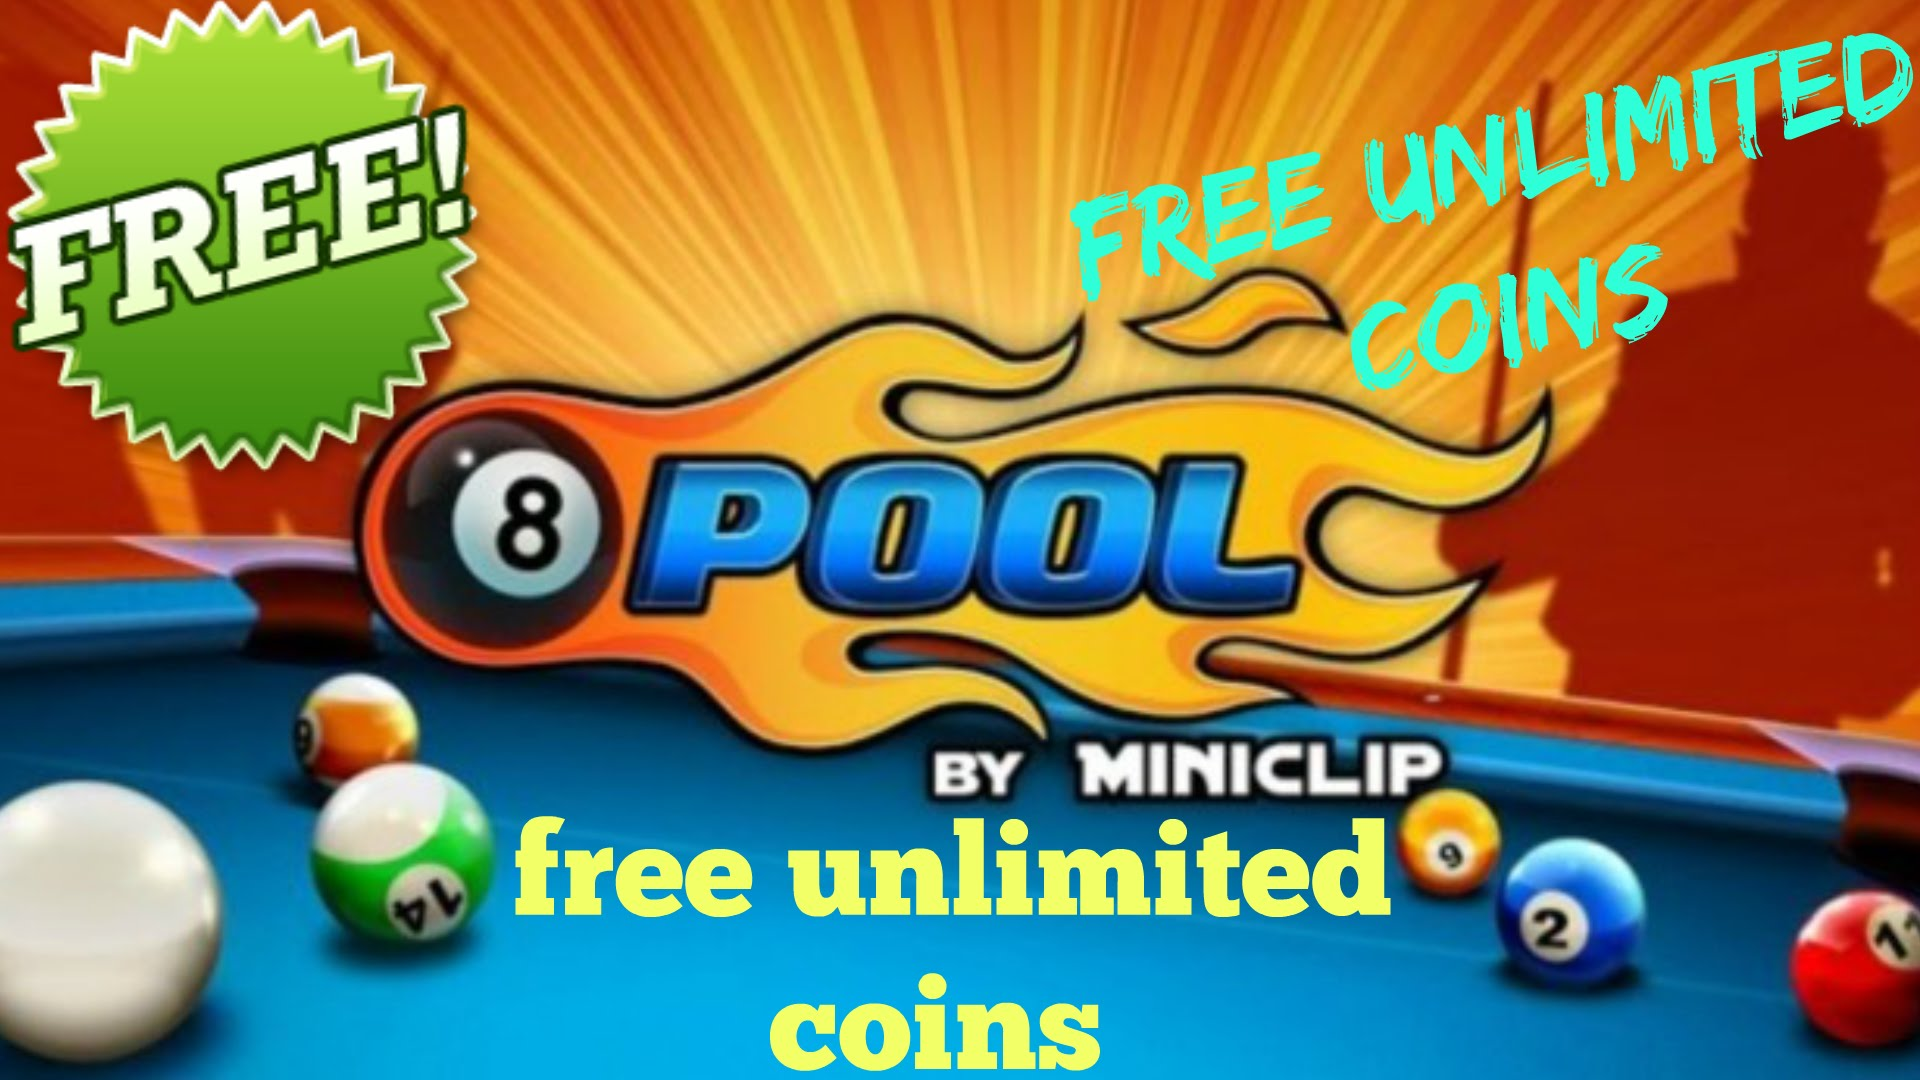 Fresh Update CROSSREPLAY.COM 8BALLPOOL 8 BALL POOL